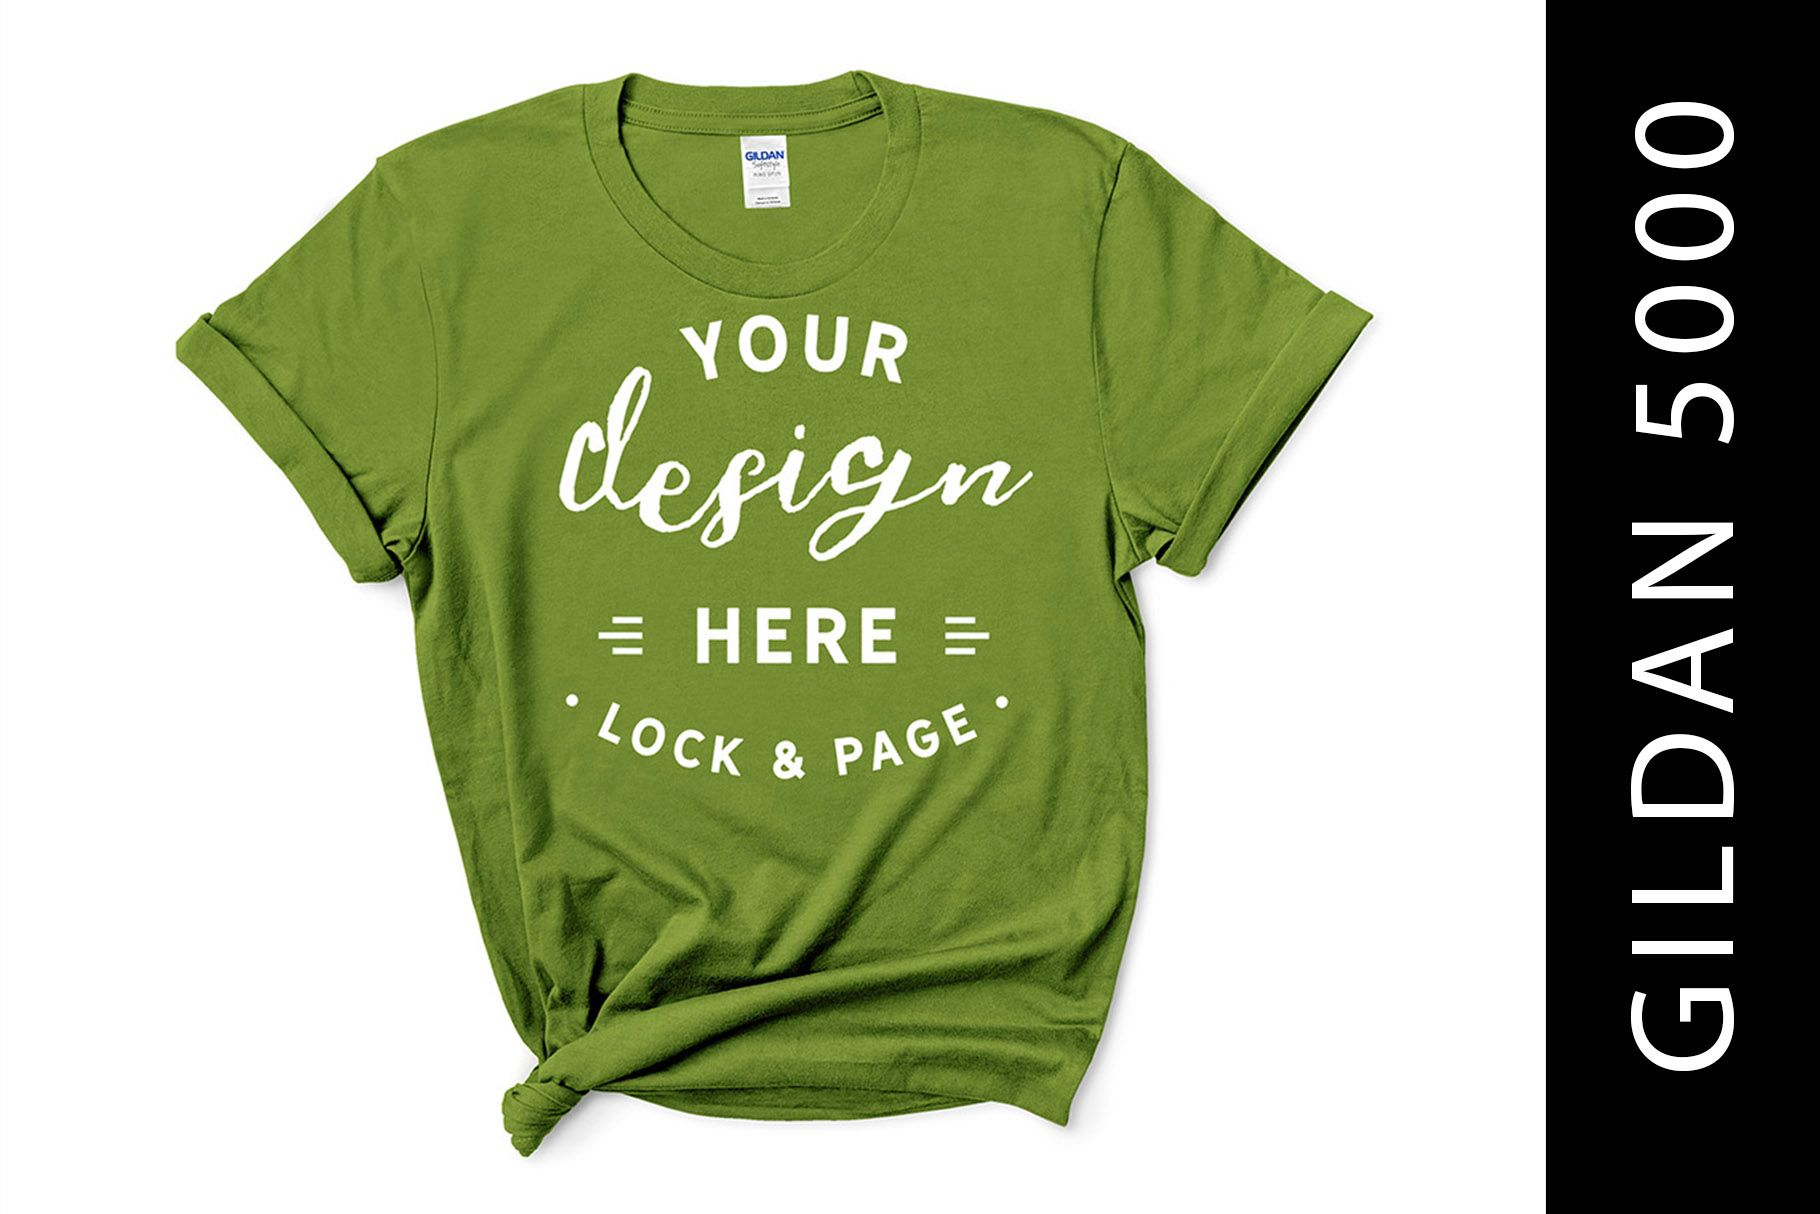 Download Kiwi Gildan 5000 Girls T Shirt Mockup Graphic By Lockandpage Creative Fabrica Shirt Mockup Tshirt Mockup Packaging Design Inspiration